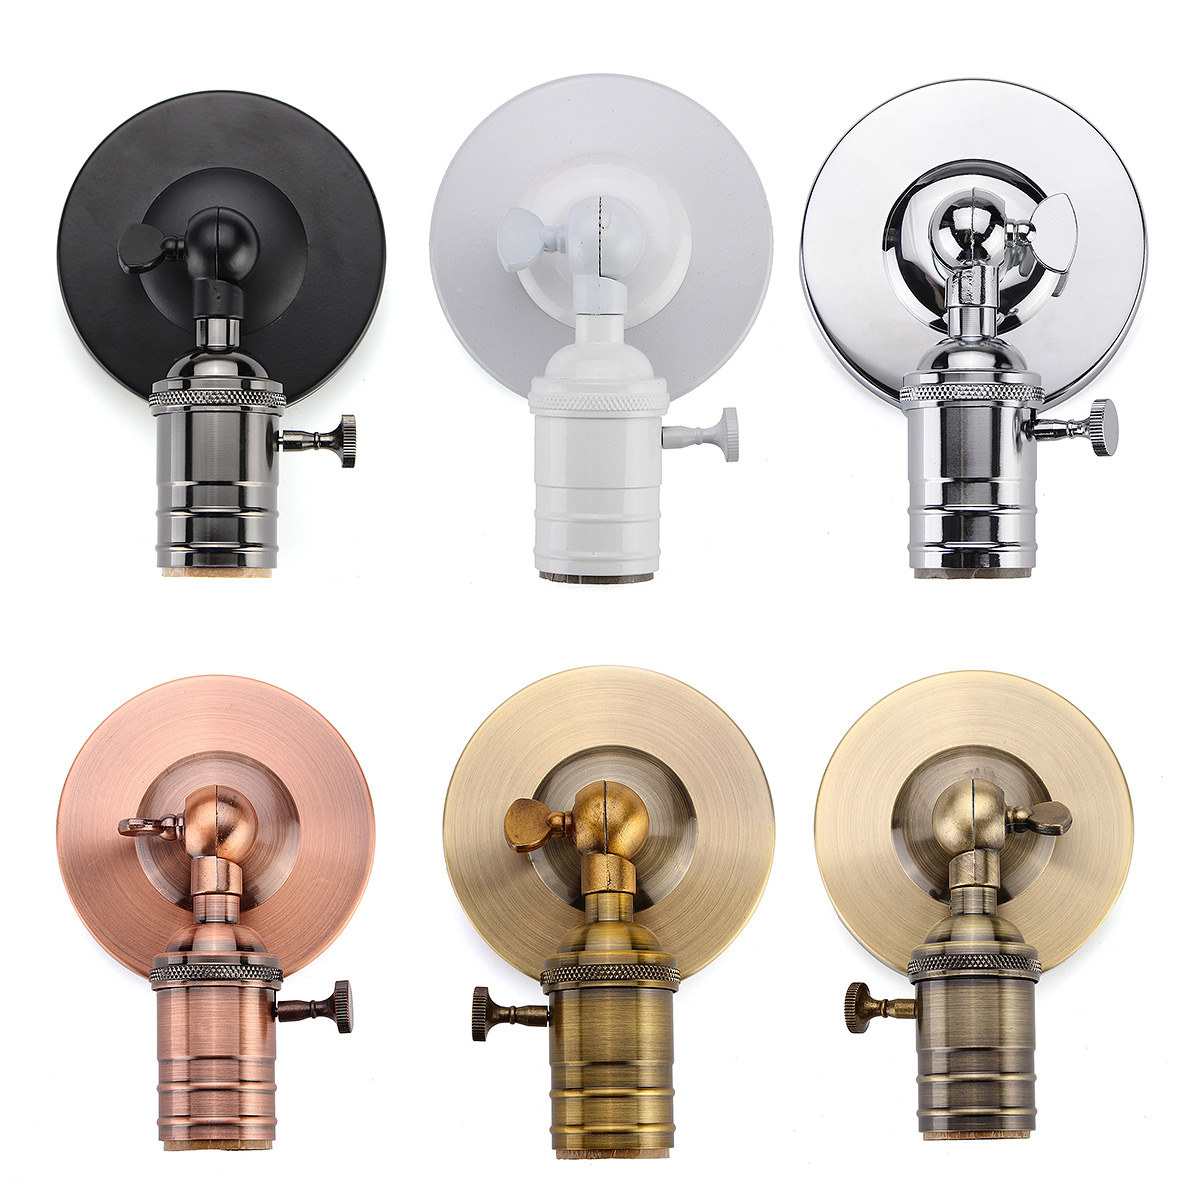 E27/E26 Modern Edison Vintage Ceiling Light Wall Lamp Bulb ...